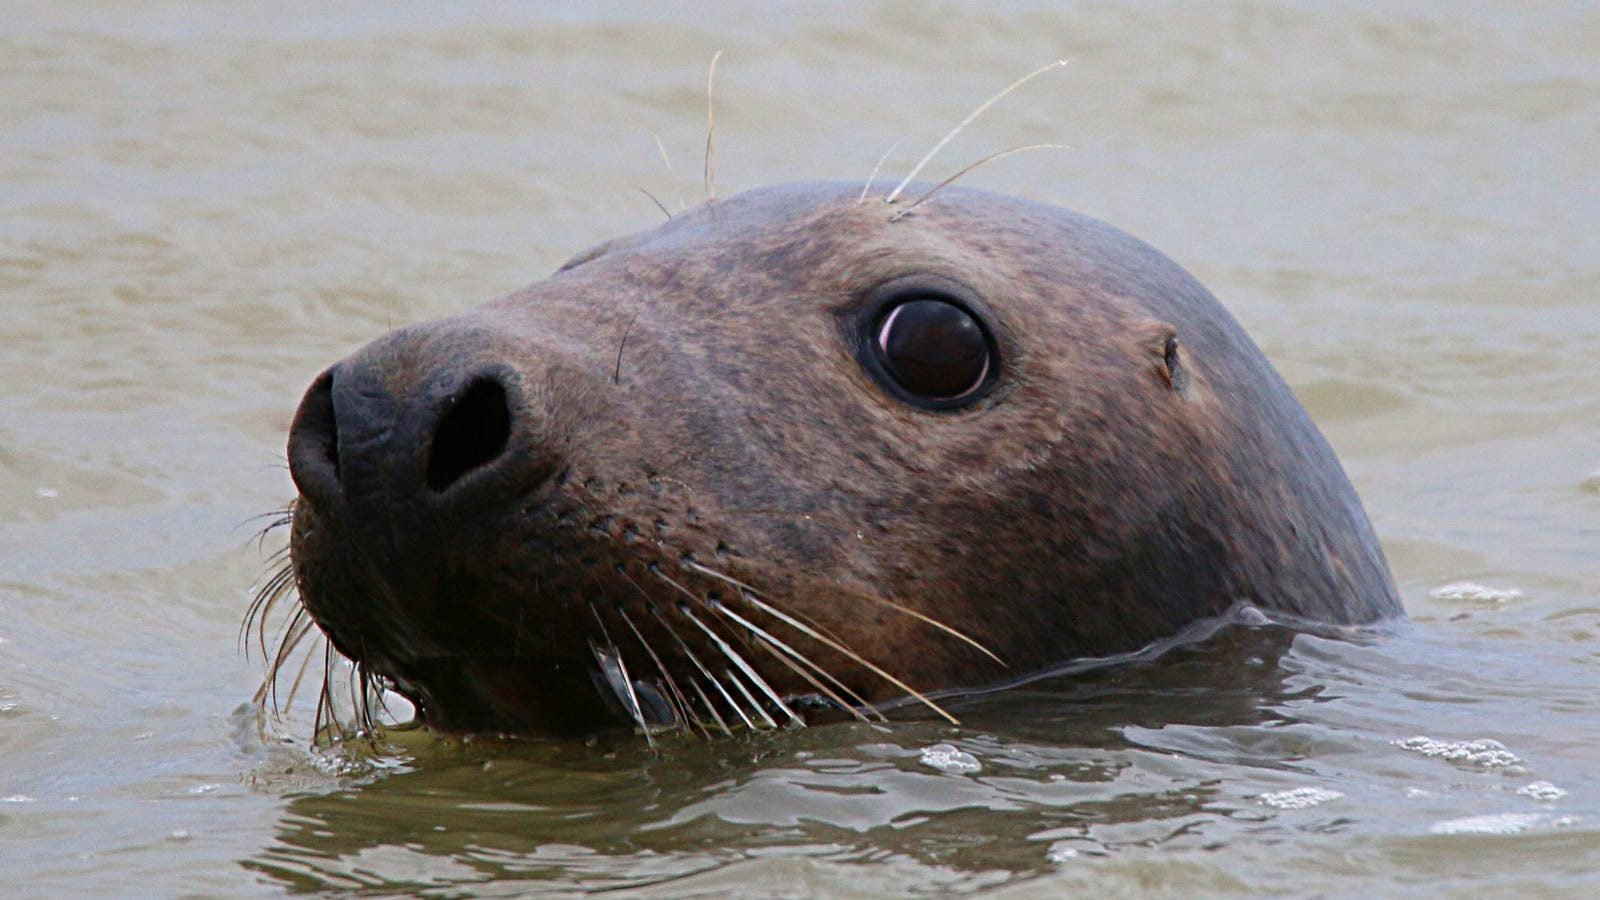 First Evidence that Microplastics Travel Up the Food Chain and Into Seal Bellies